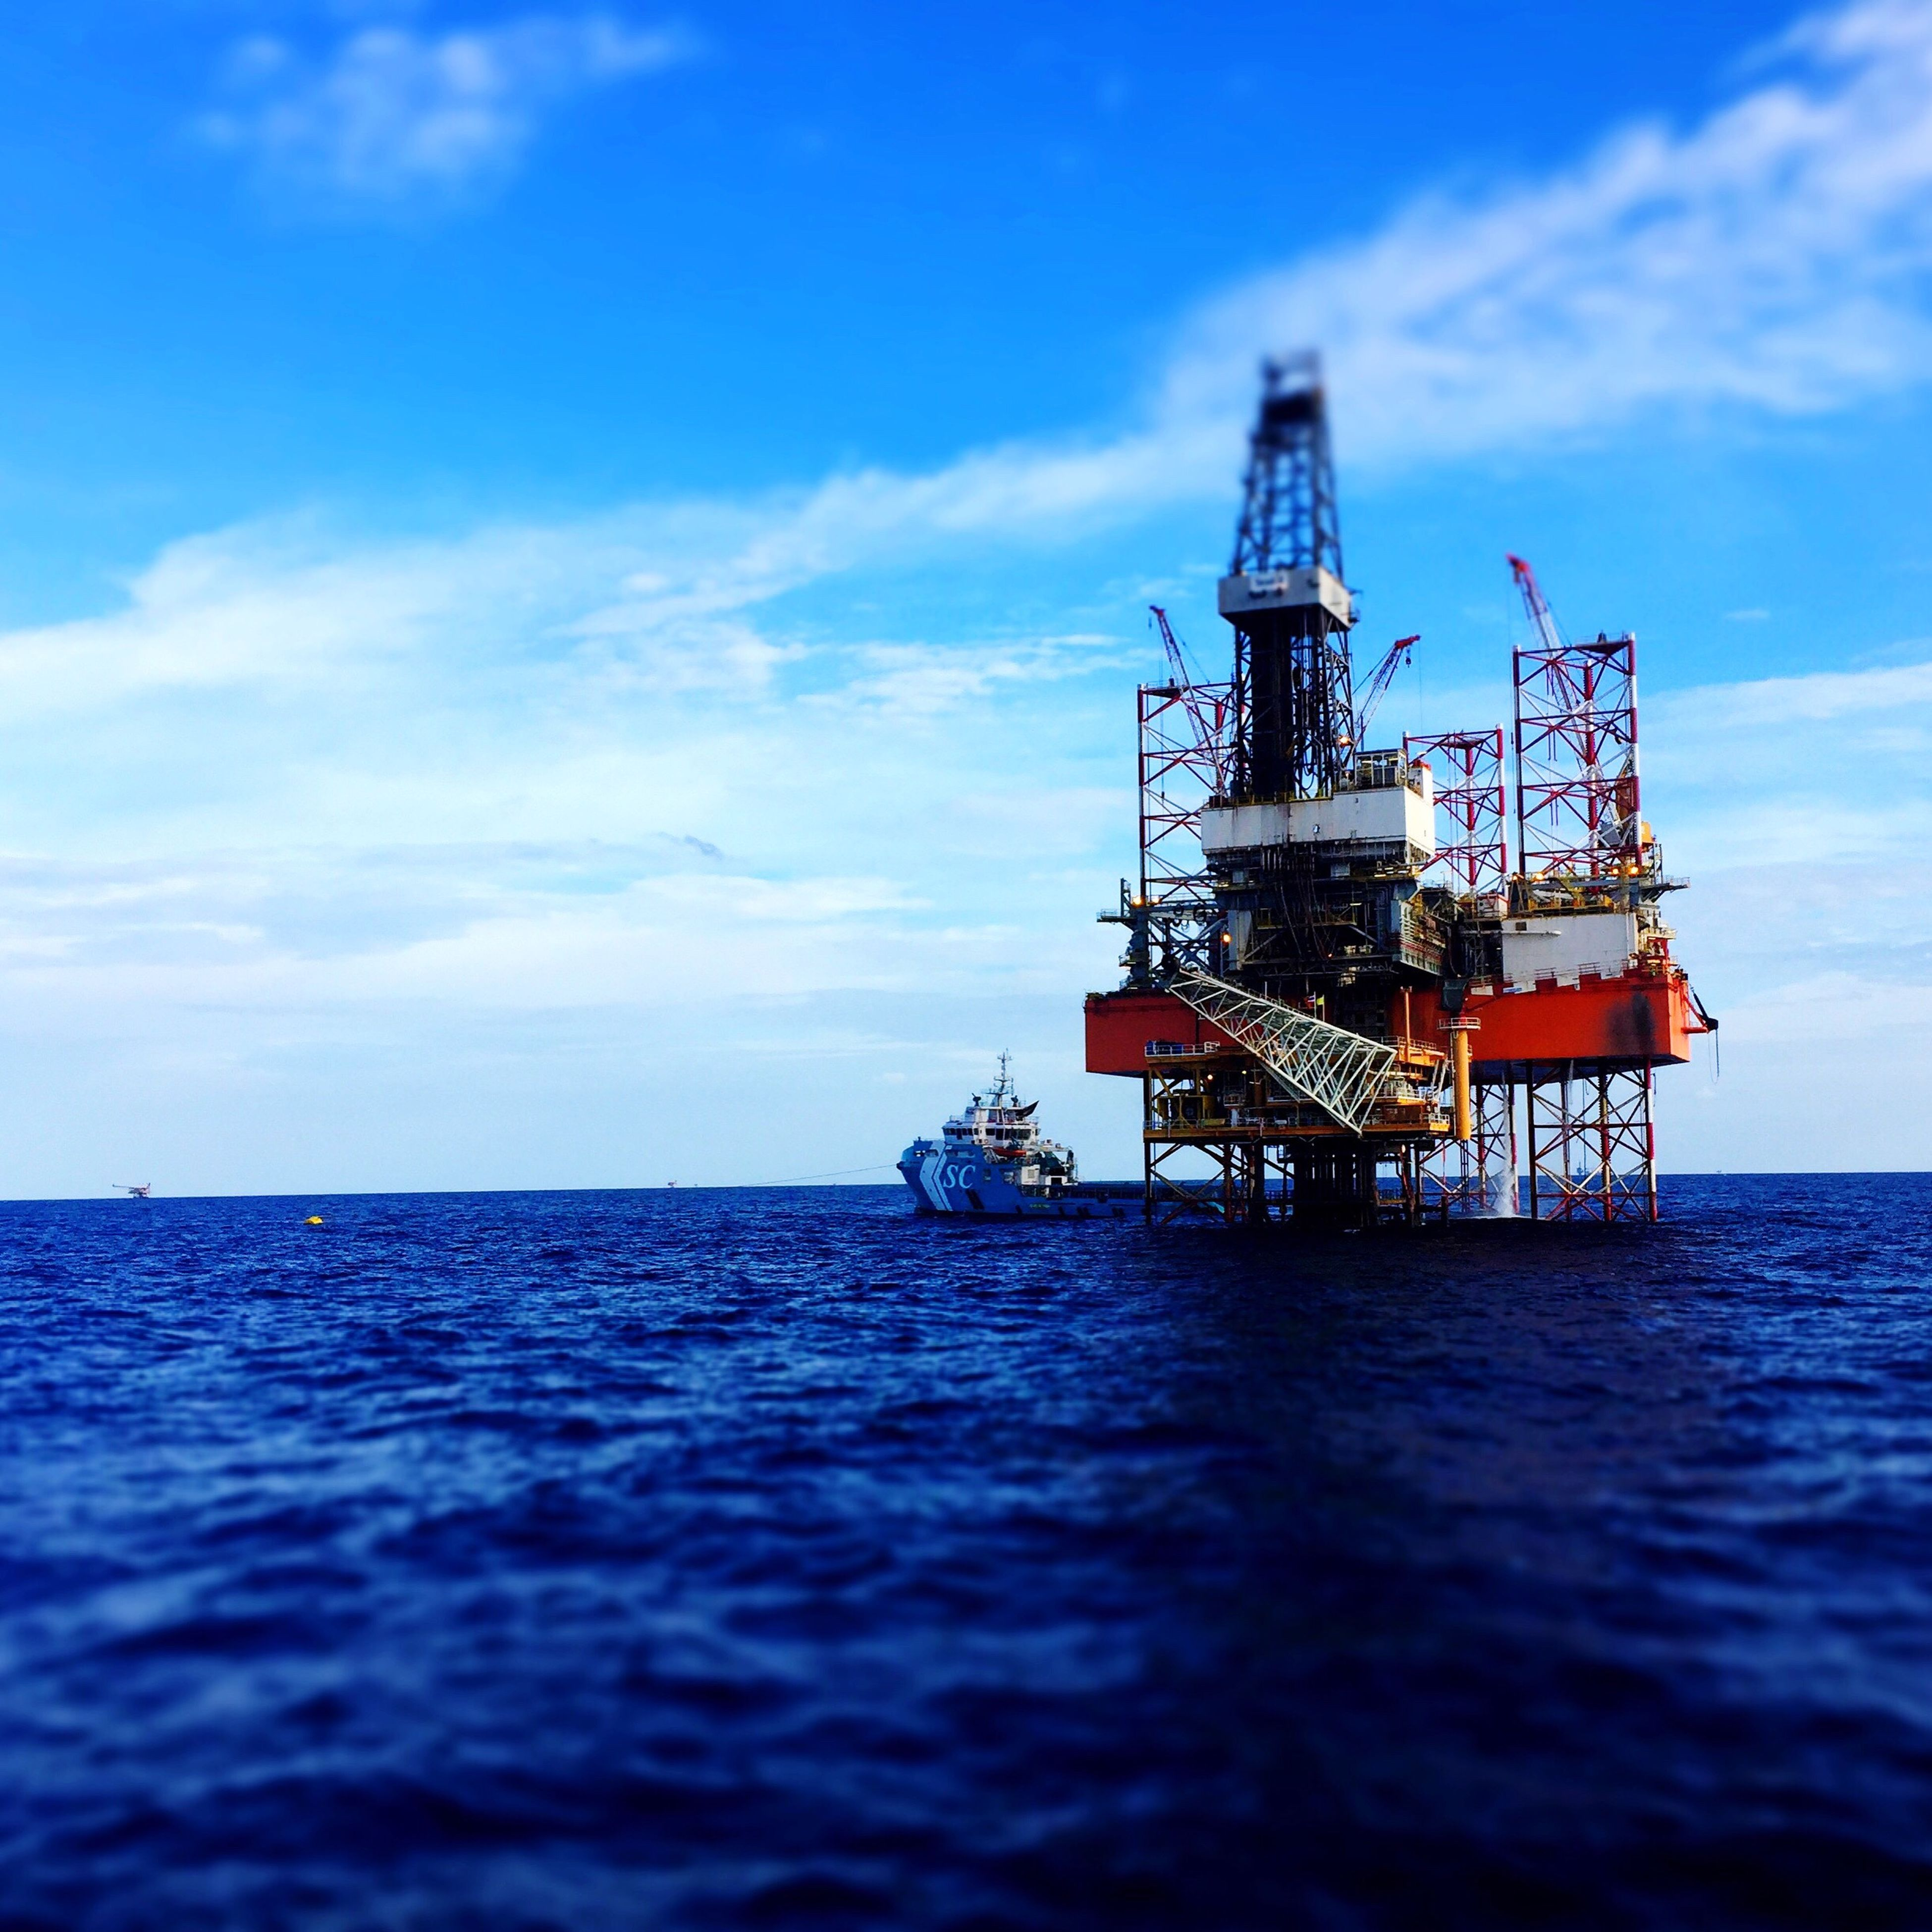 sea, sky, cloud - sky, offshore platform, nature, no people, water, built structure, beauty in nature, outdoors, horizon over water, drilling rig, architecture, day